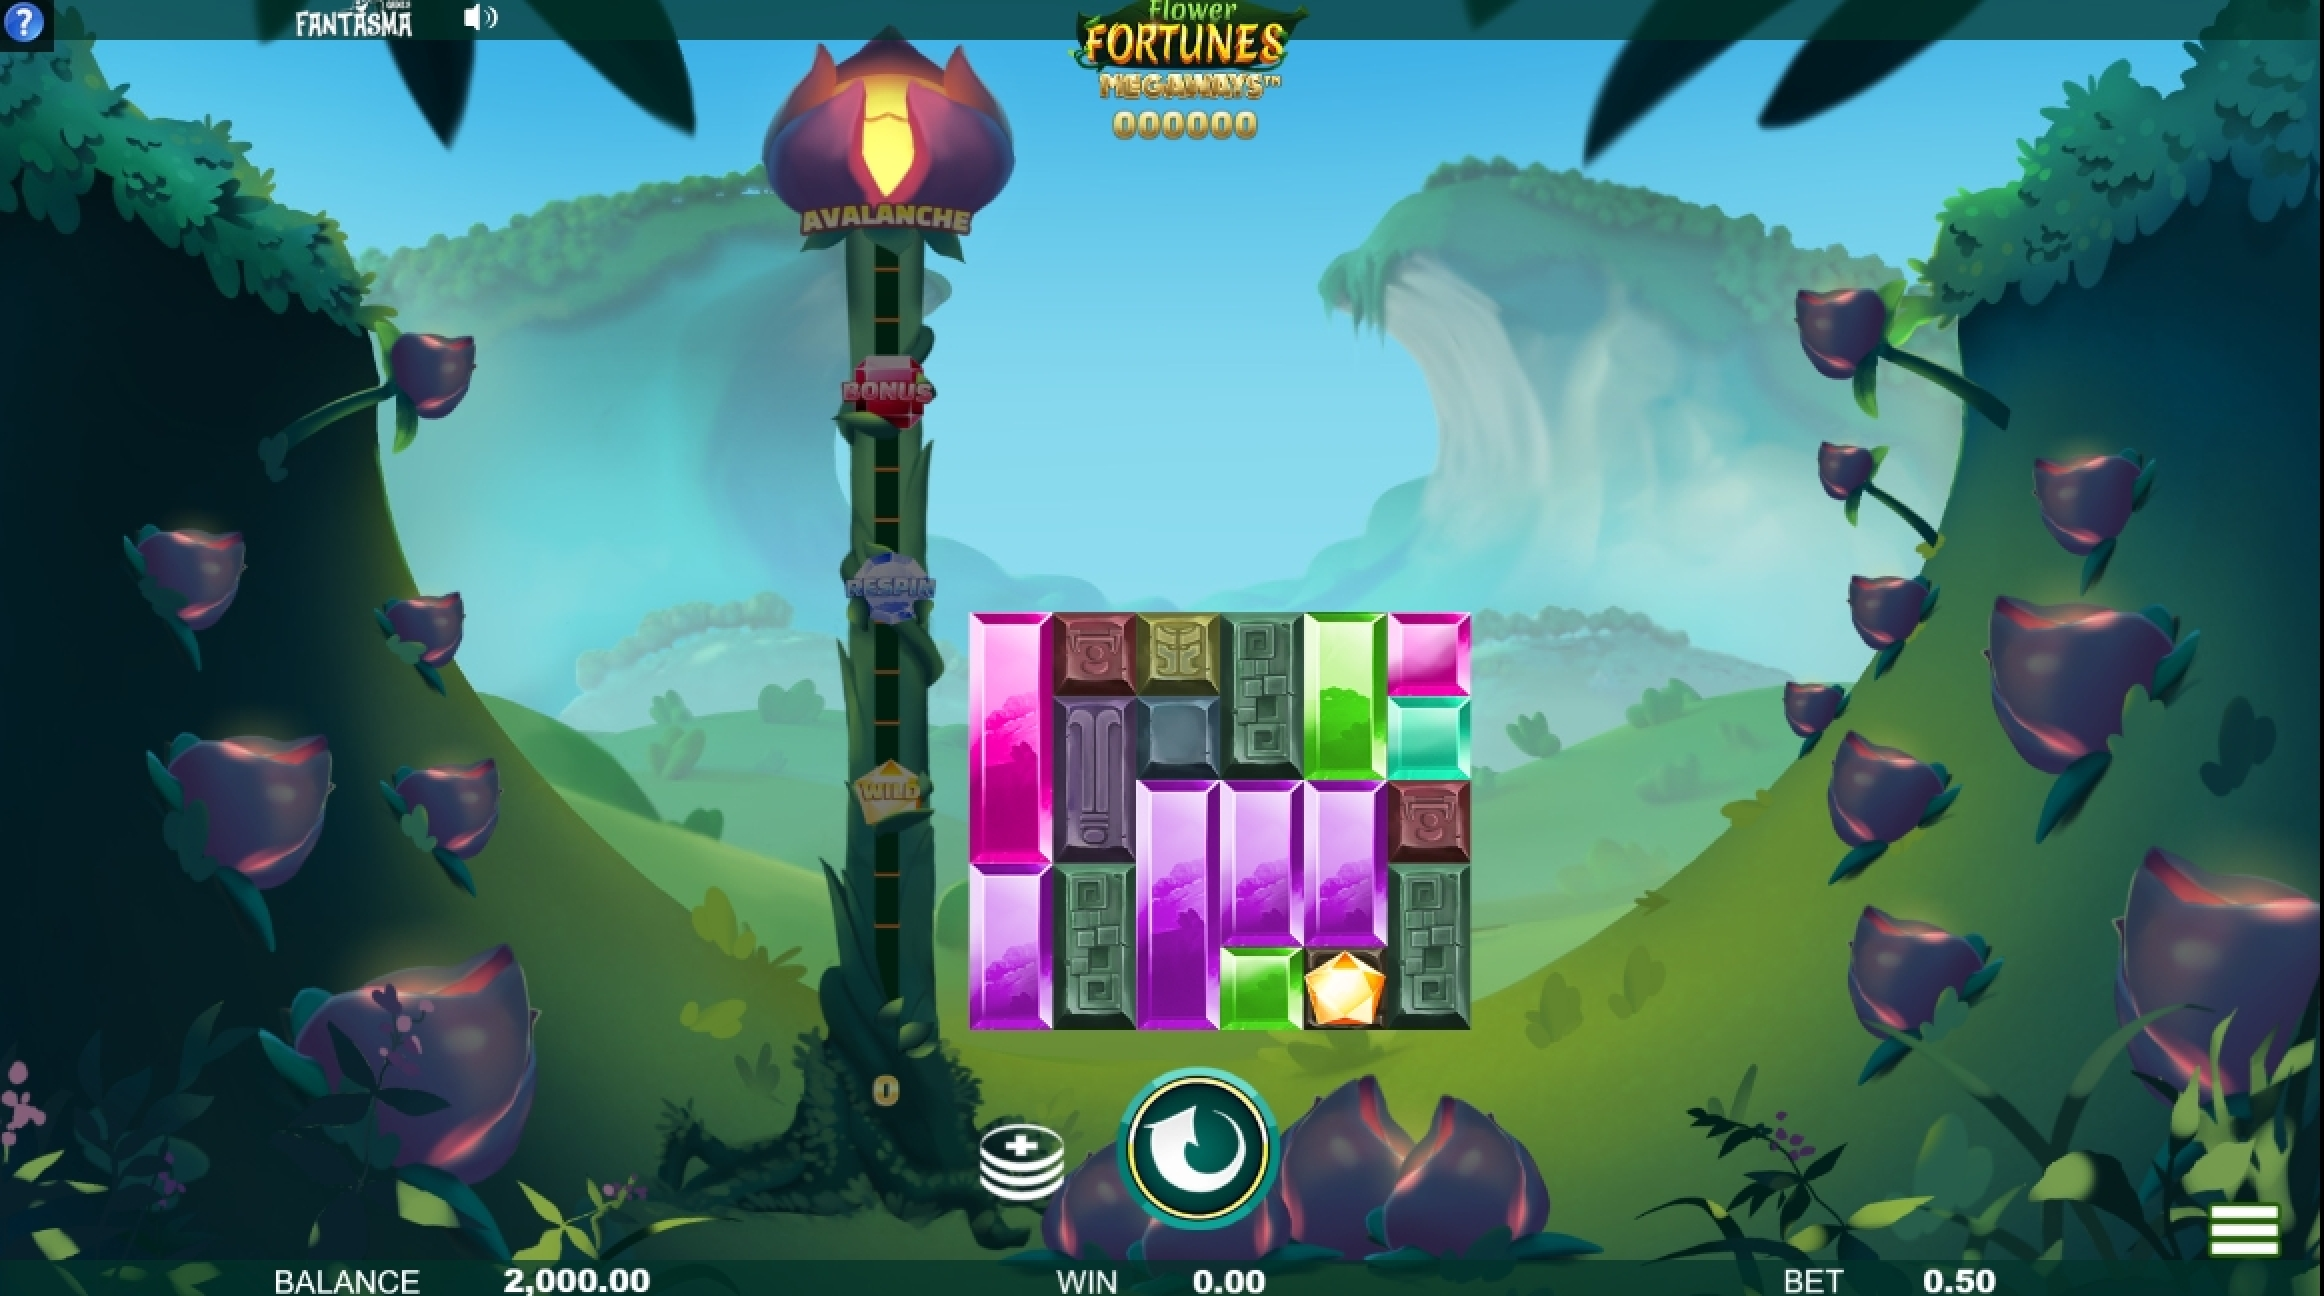 Reels in Flower Fortunes Slot Game by Fantasma Games